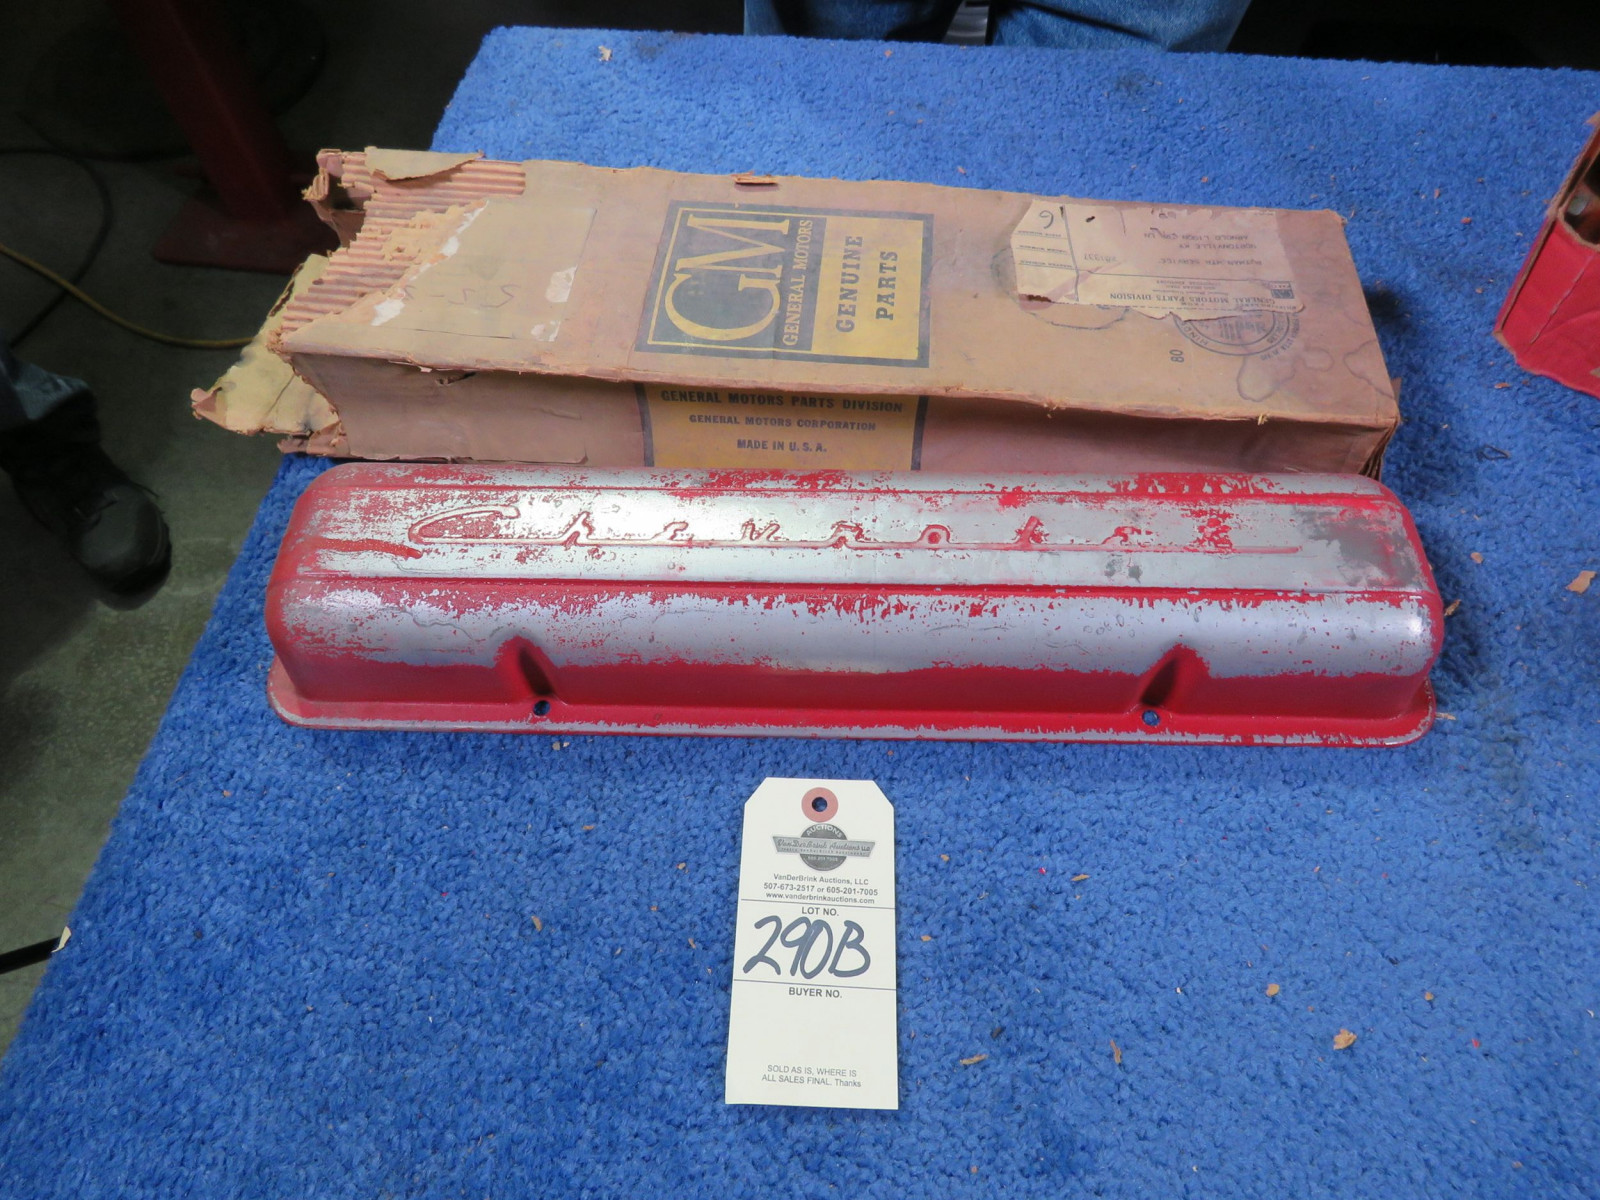 NOS 265 Chevrolet Valve Covers - Image 1